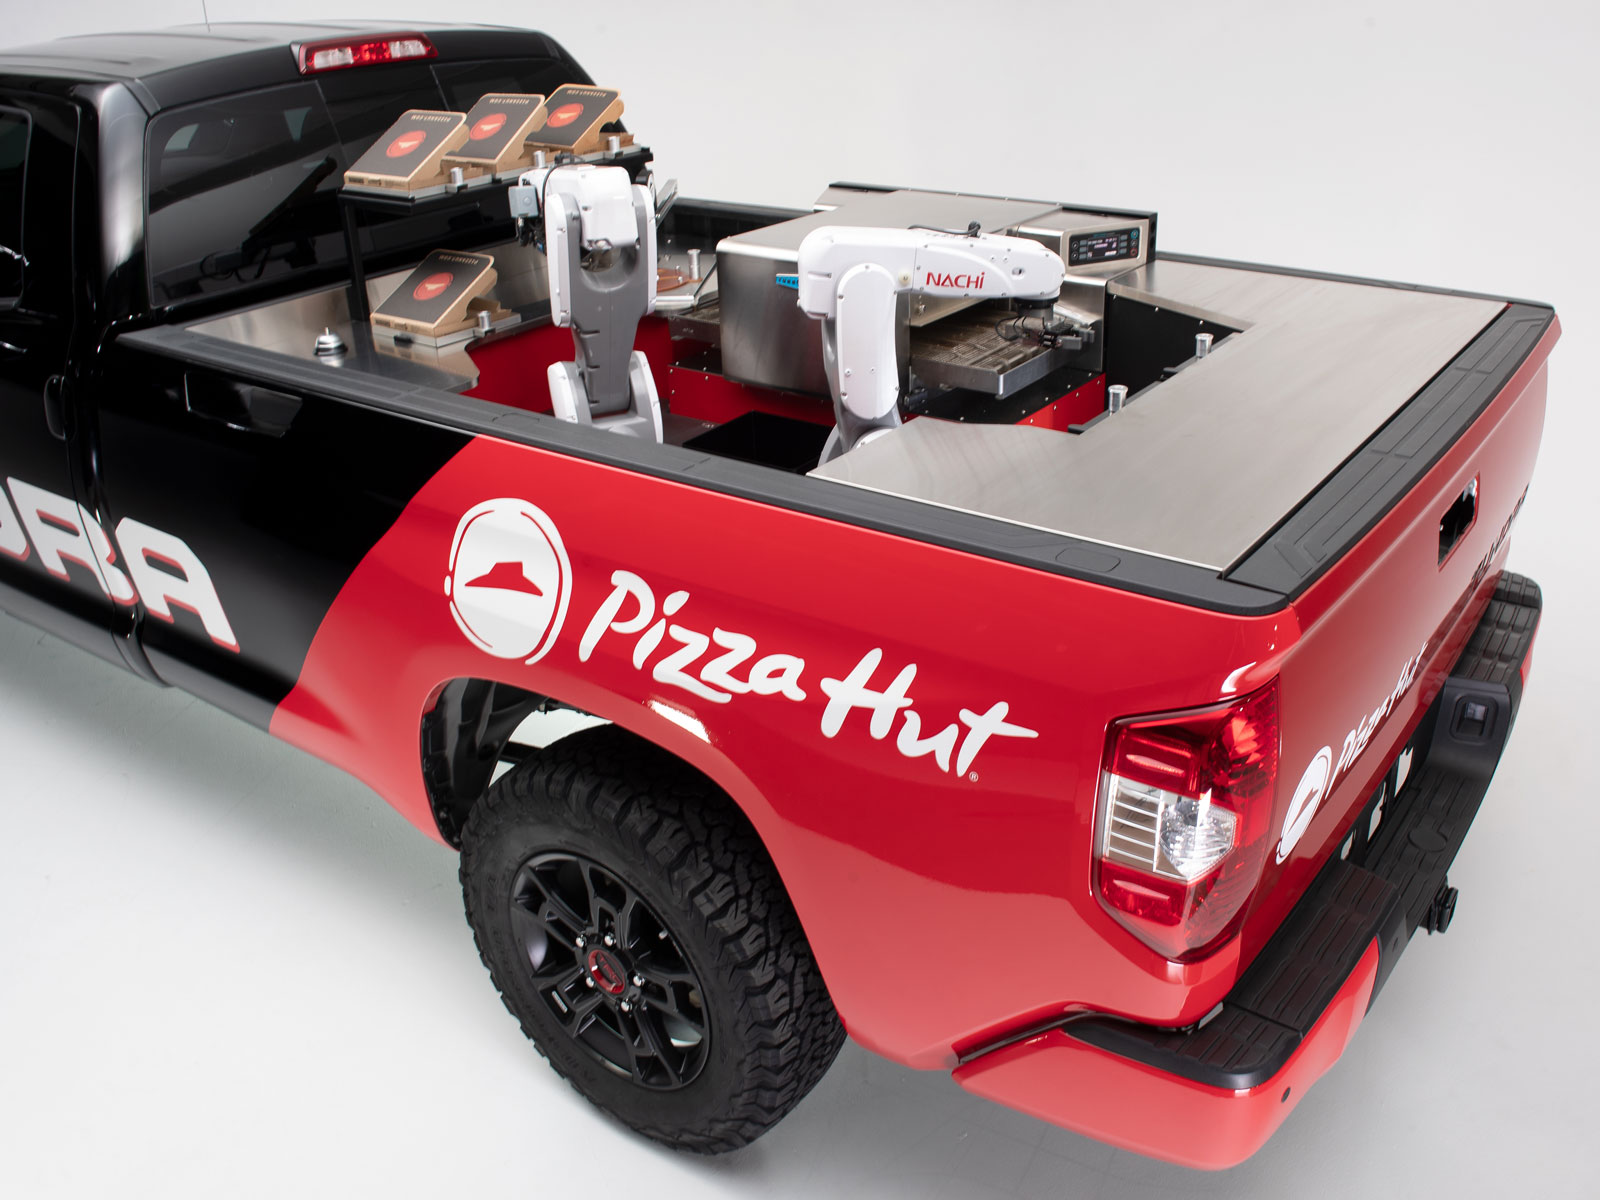 Pizza Hut Put an Automated Pizza Kitchen in the Back of a Pickup Truck